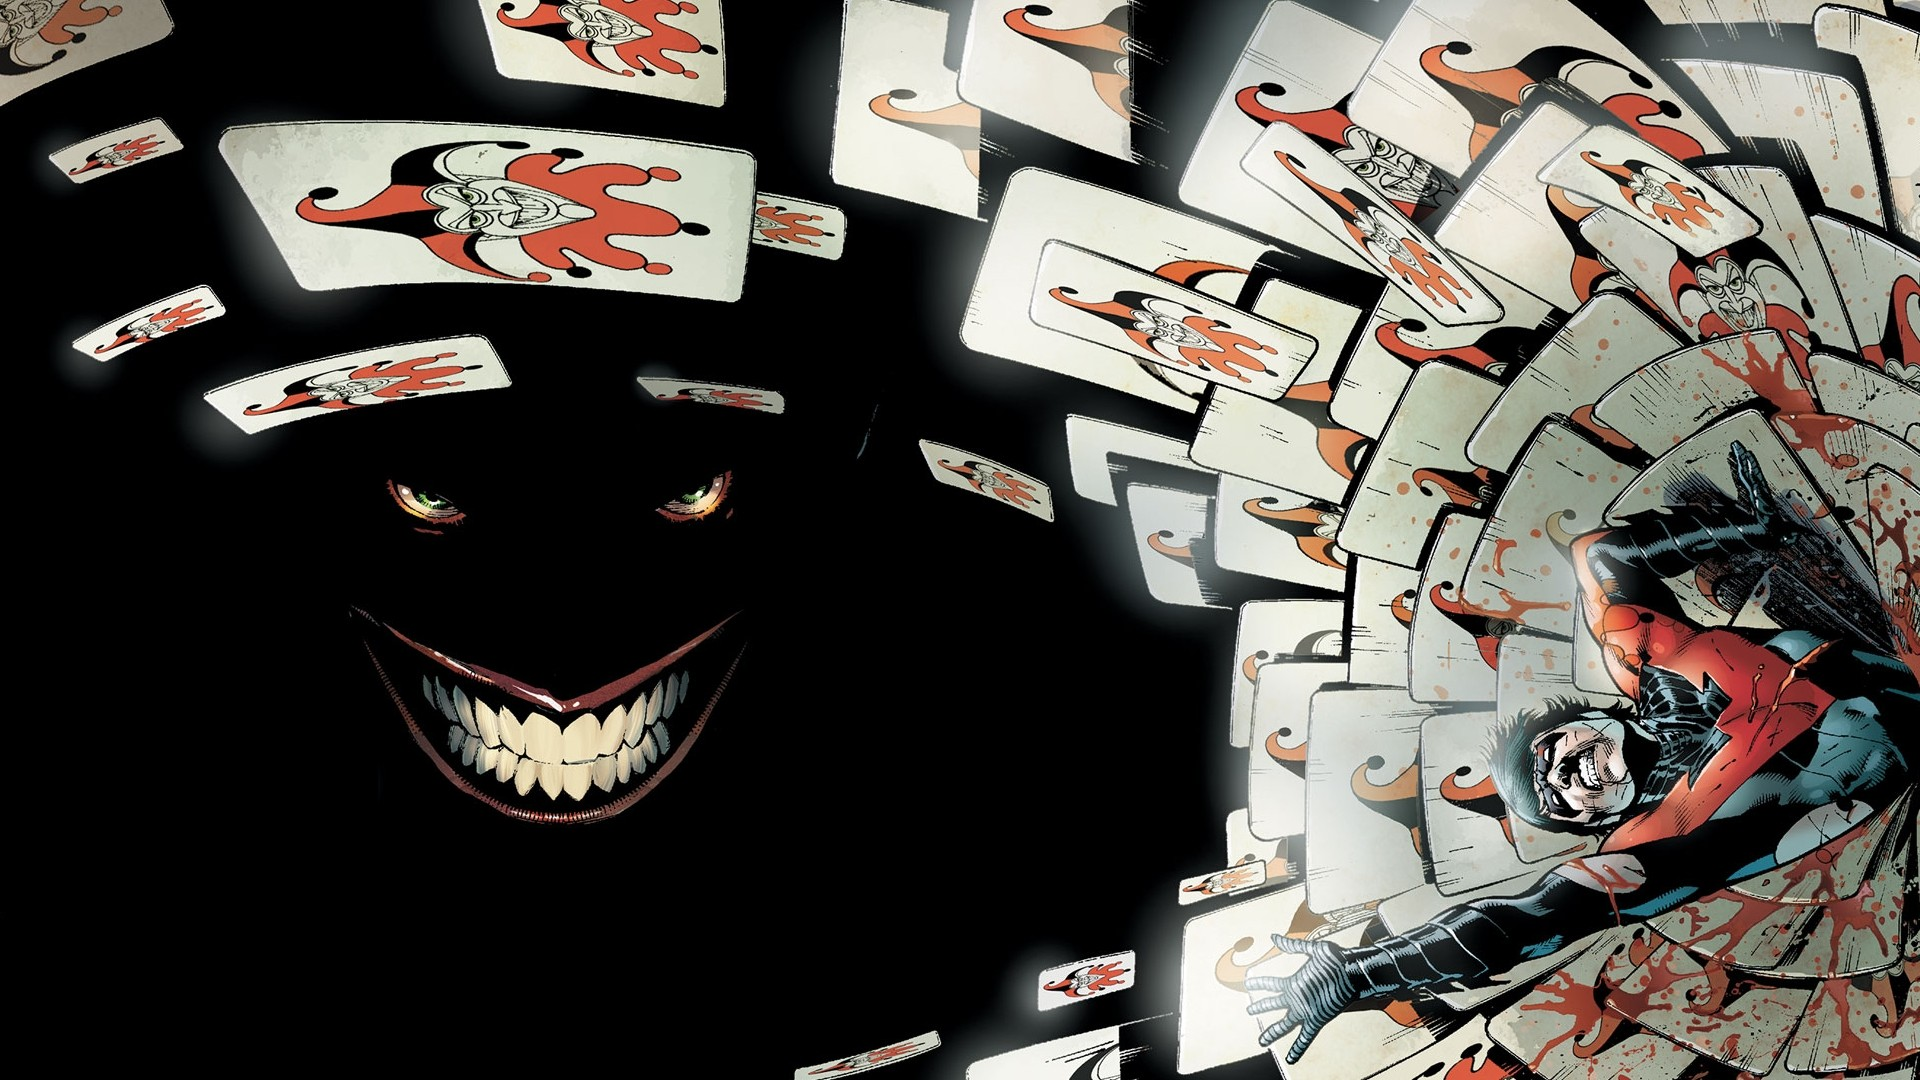 Playing Cards Wallpaper 1920x1080 71 images